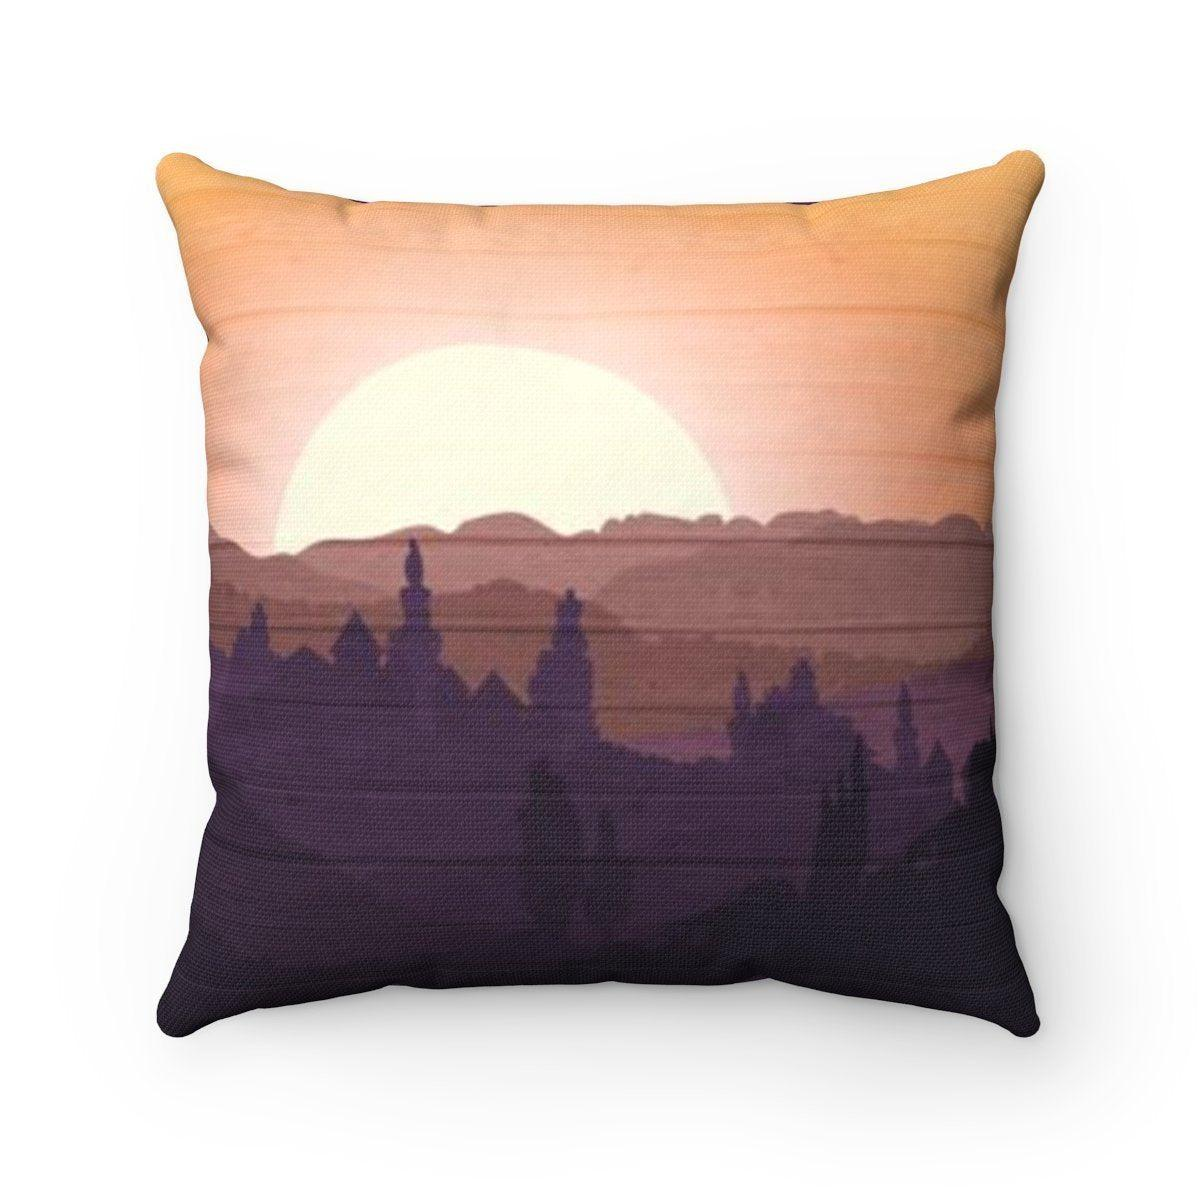 Tuscany decorative cushion cover-Home Decor - Decorative Accents - Pillows & Throws - Decorative Pillows-Maison d'Elite-16x16-Très Elite